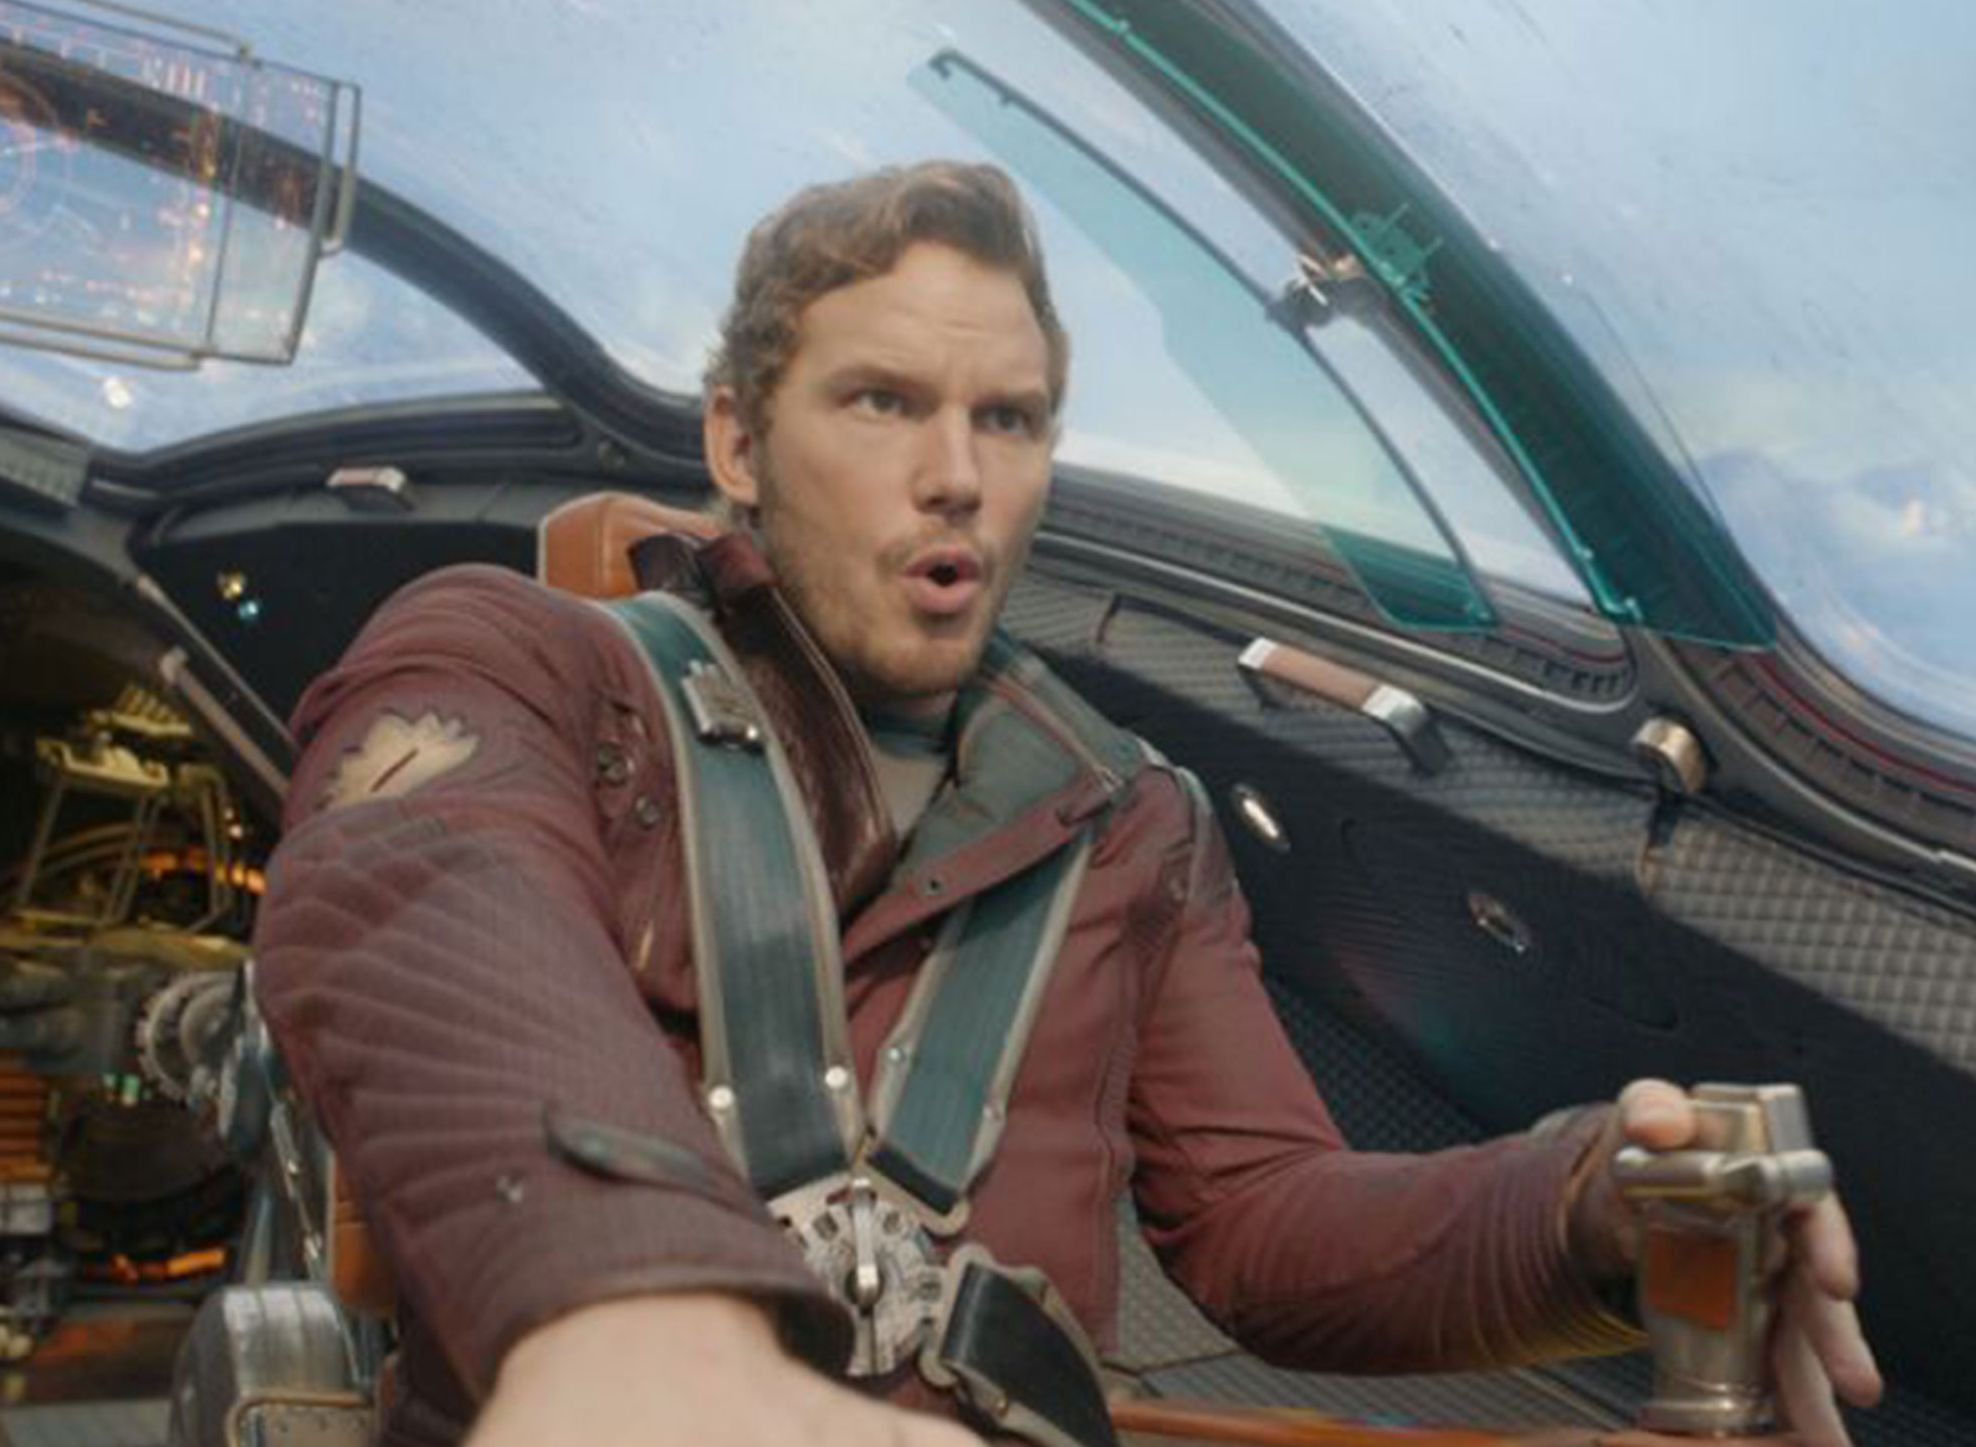 Peter Quill flies around in ship